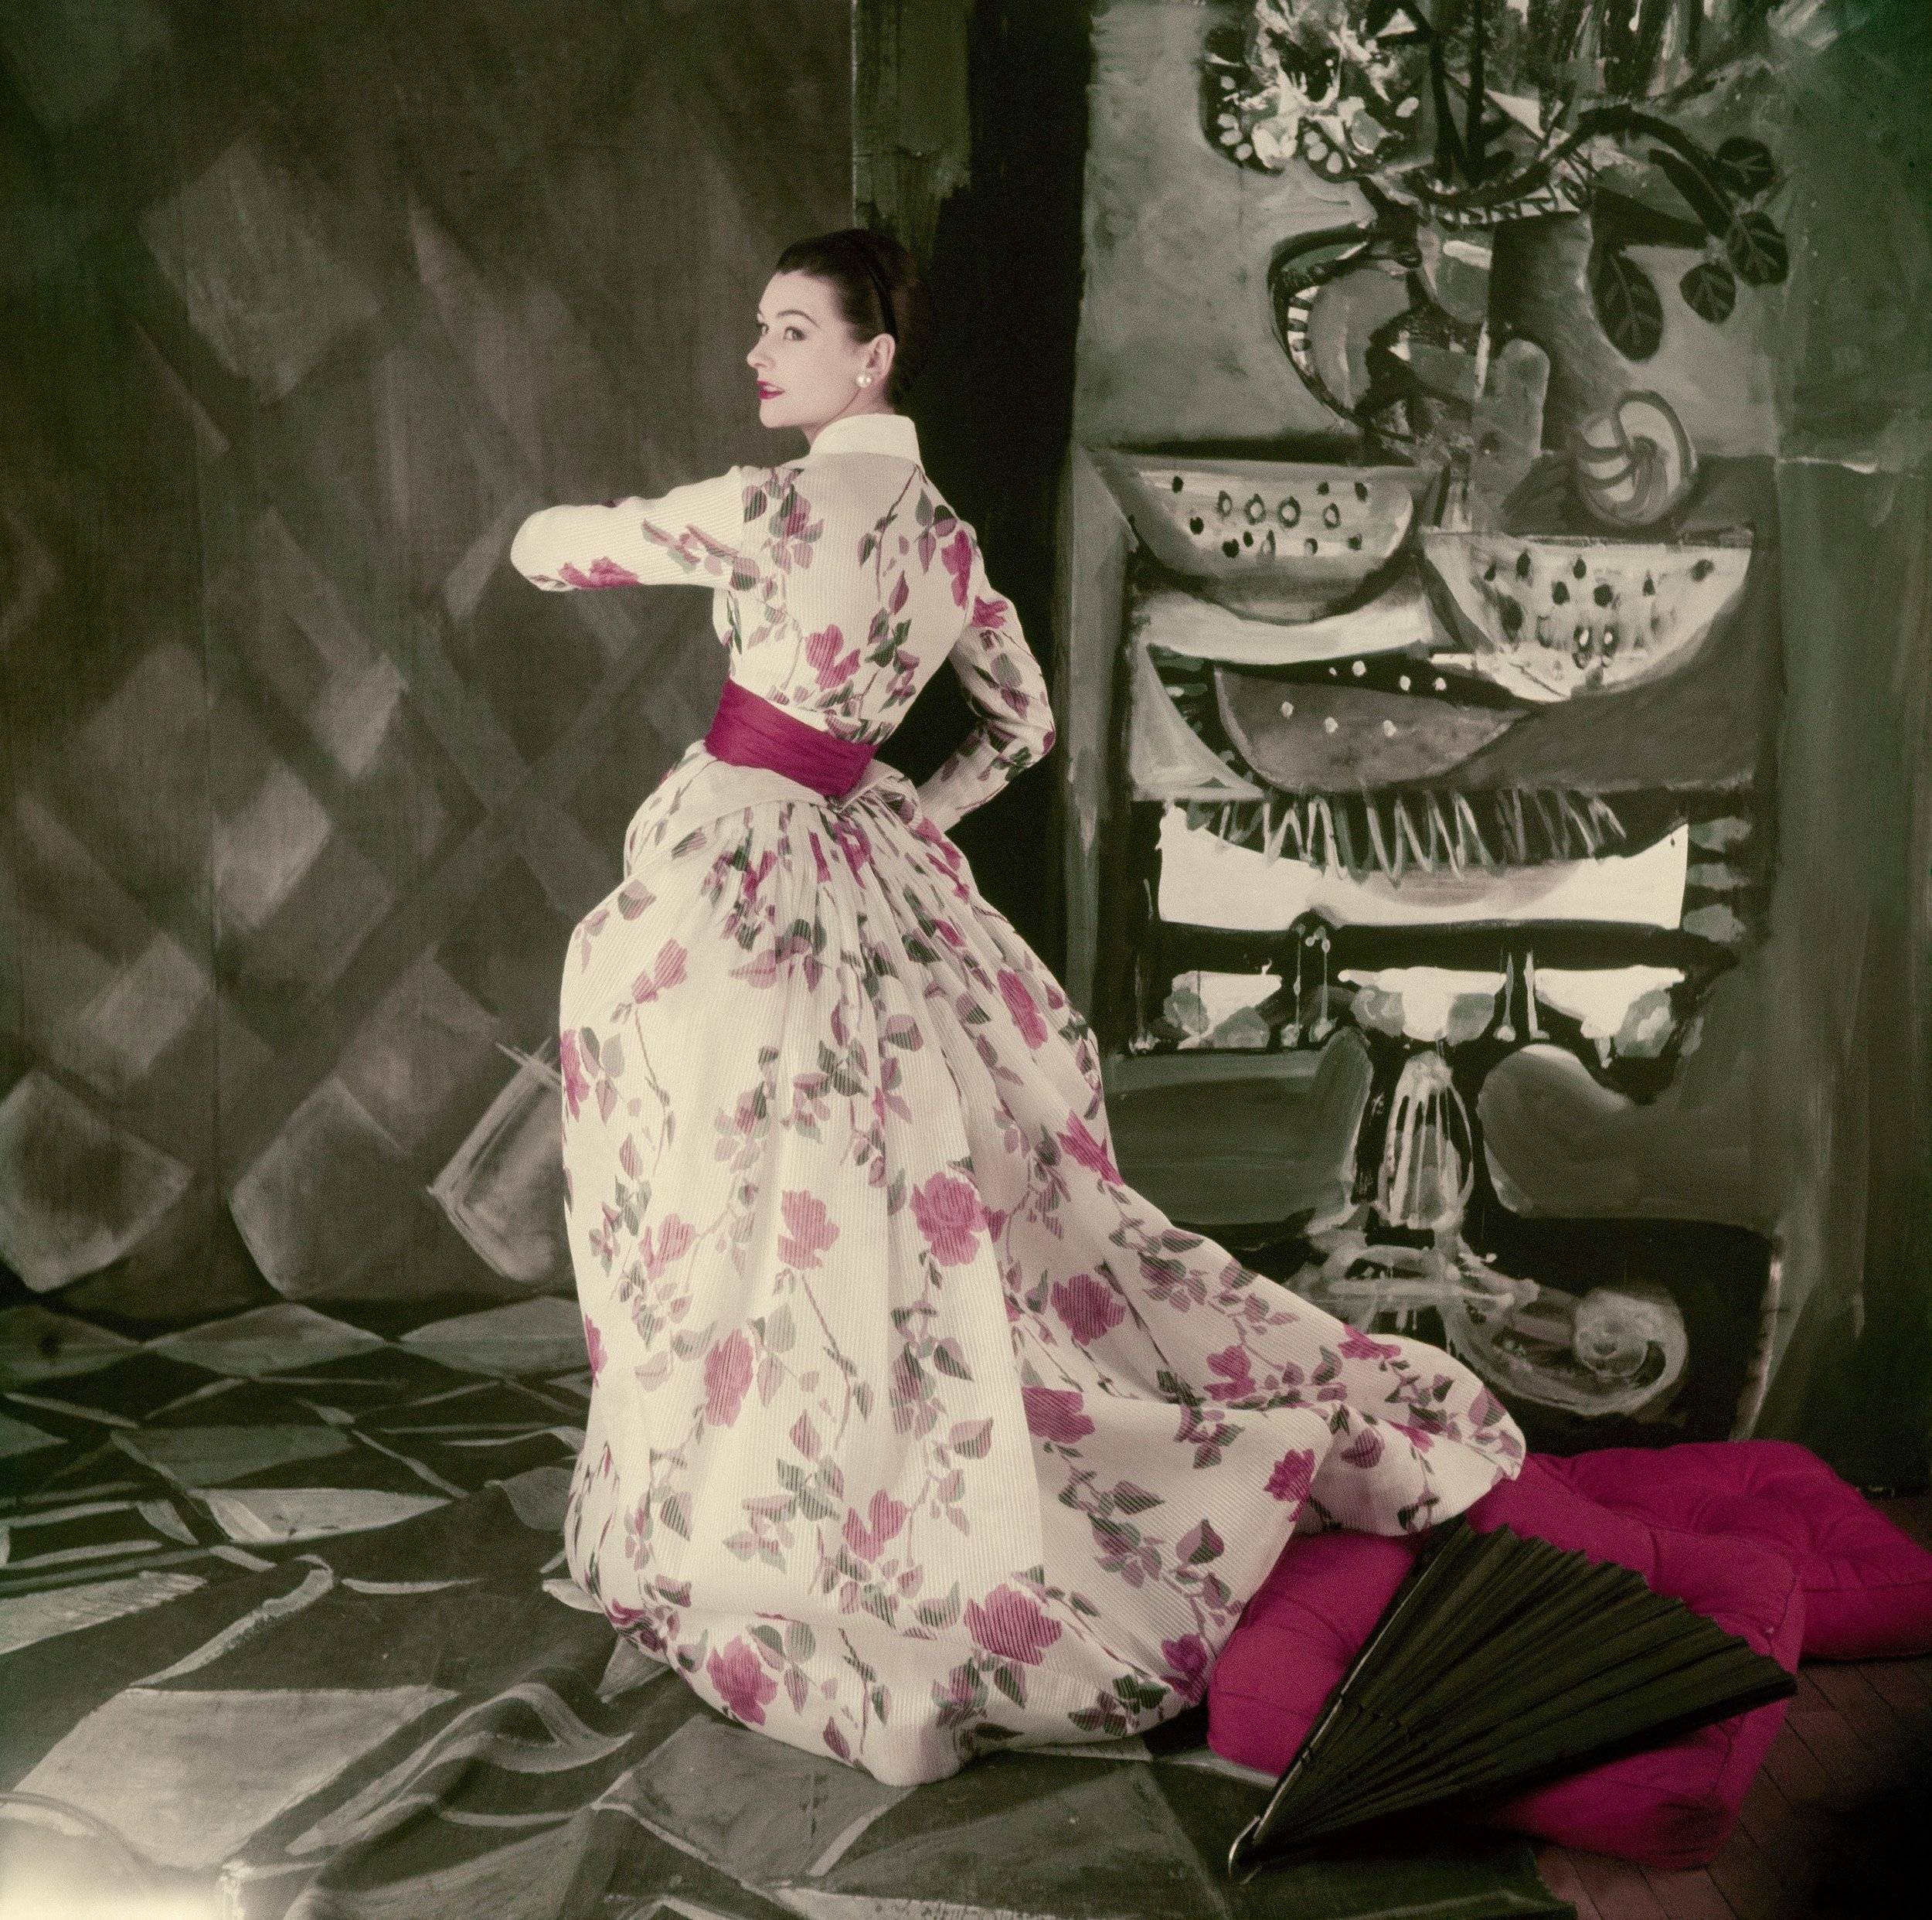 Jacques Fath dress photographed by Henry Clarke, April 1954